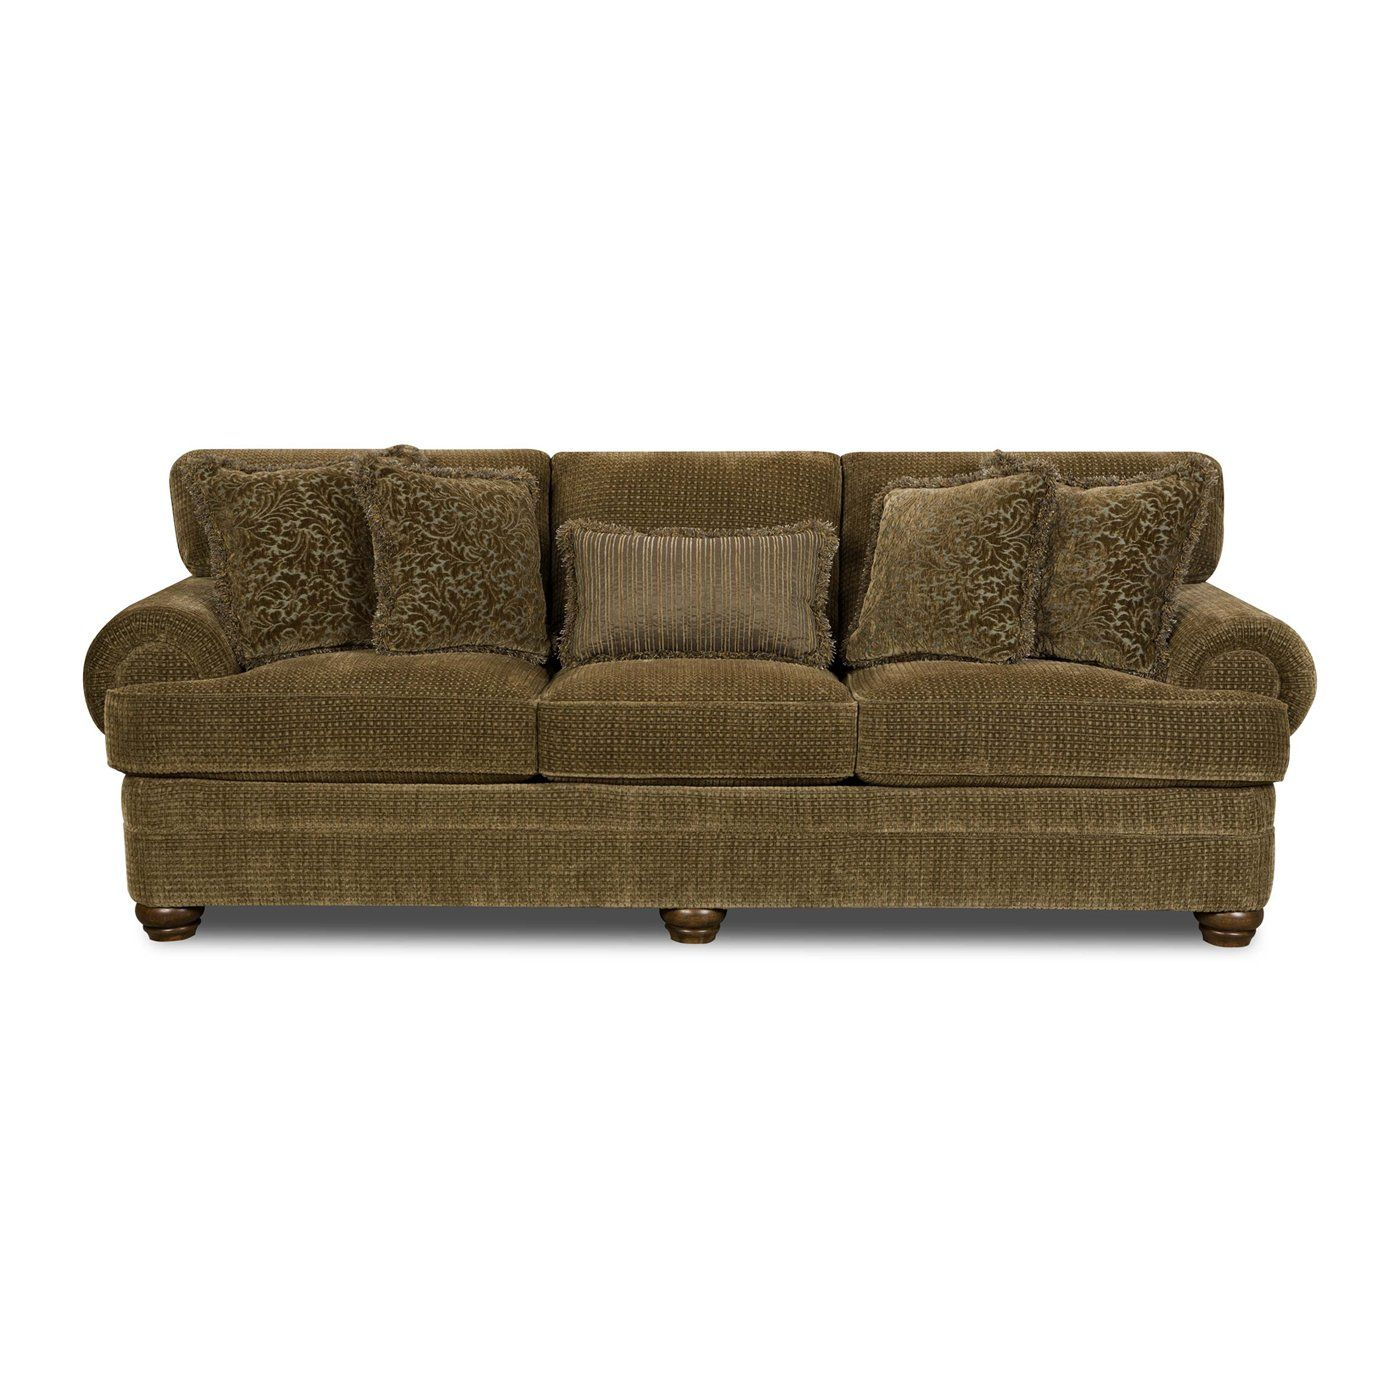 Simmons Beautyrest Sofa Bed Simmons Beautyrest Sofa Bed ...